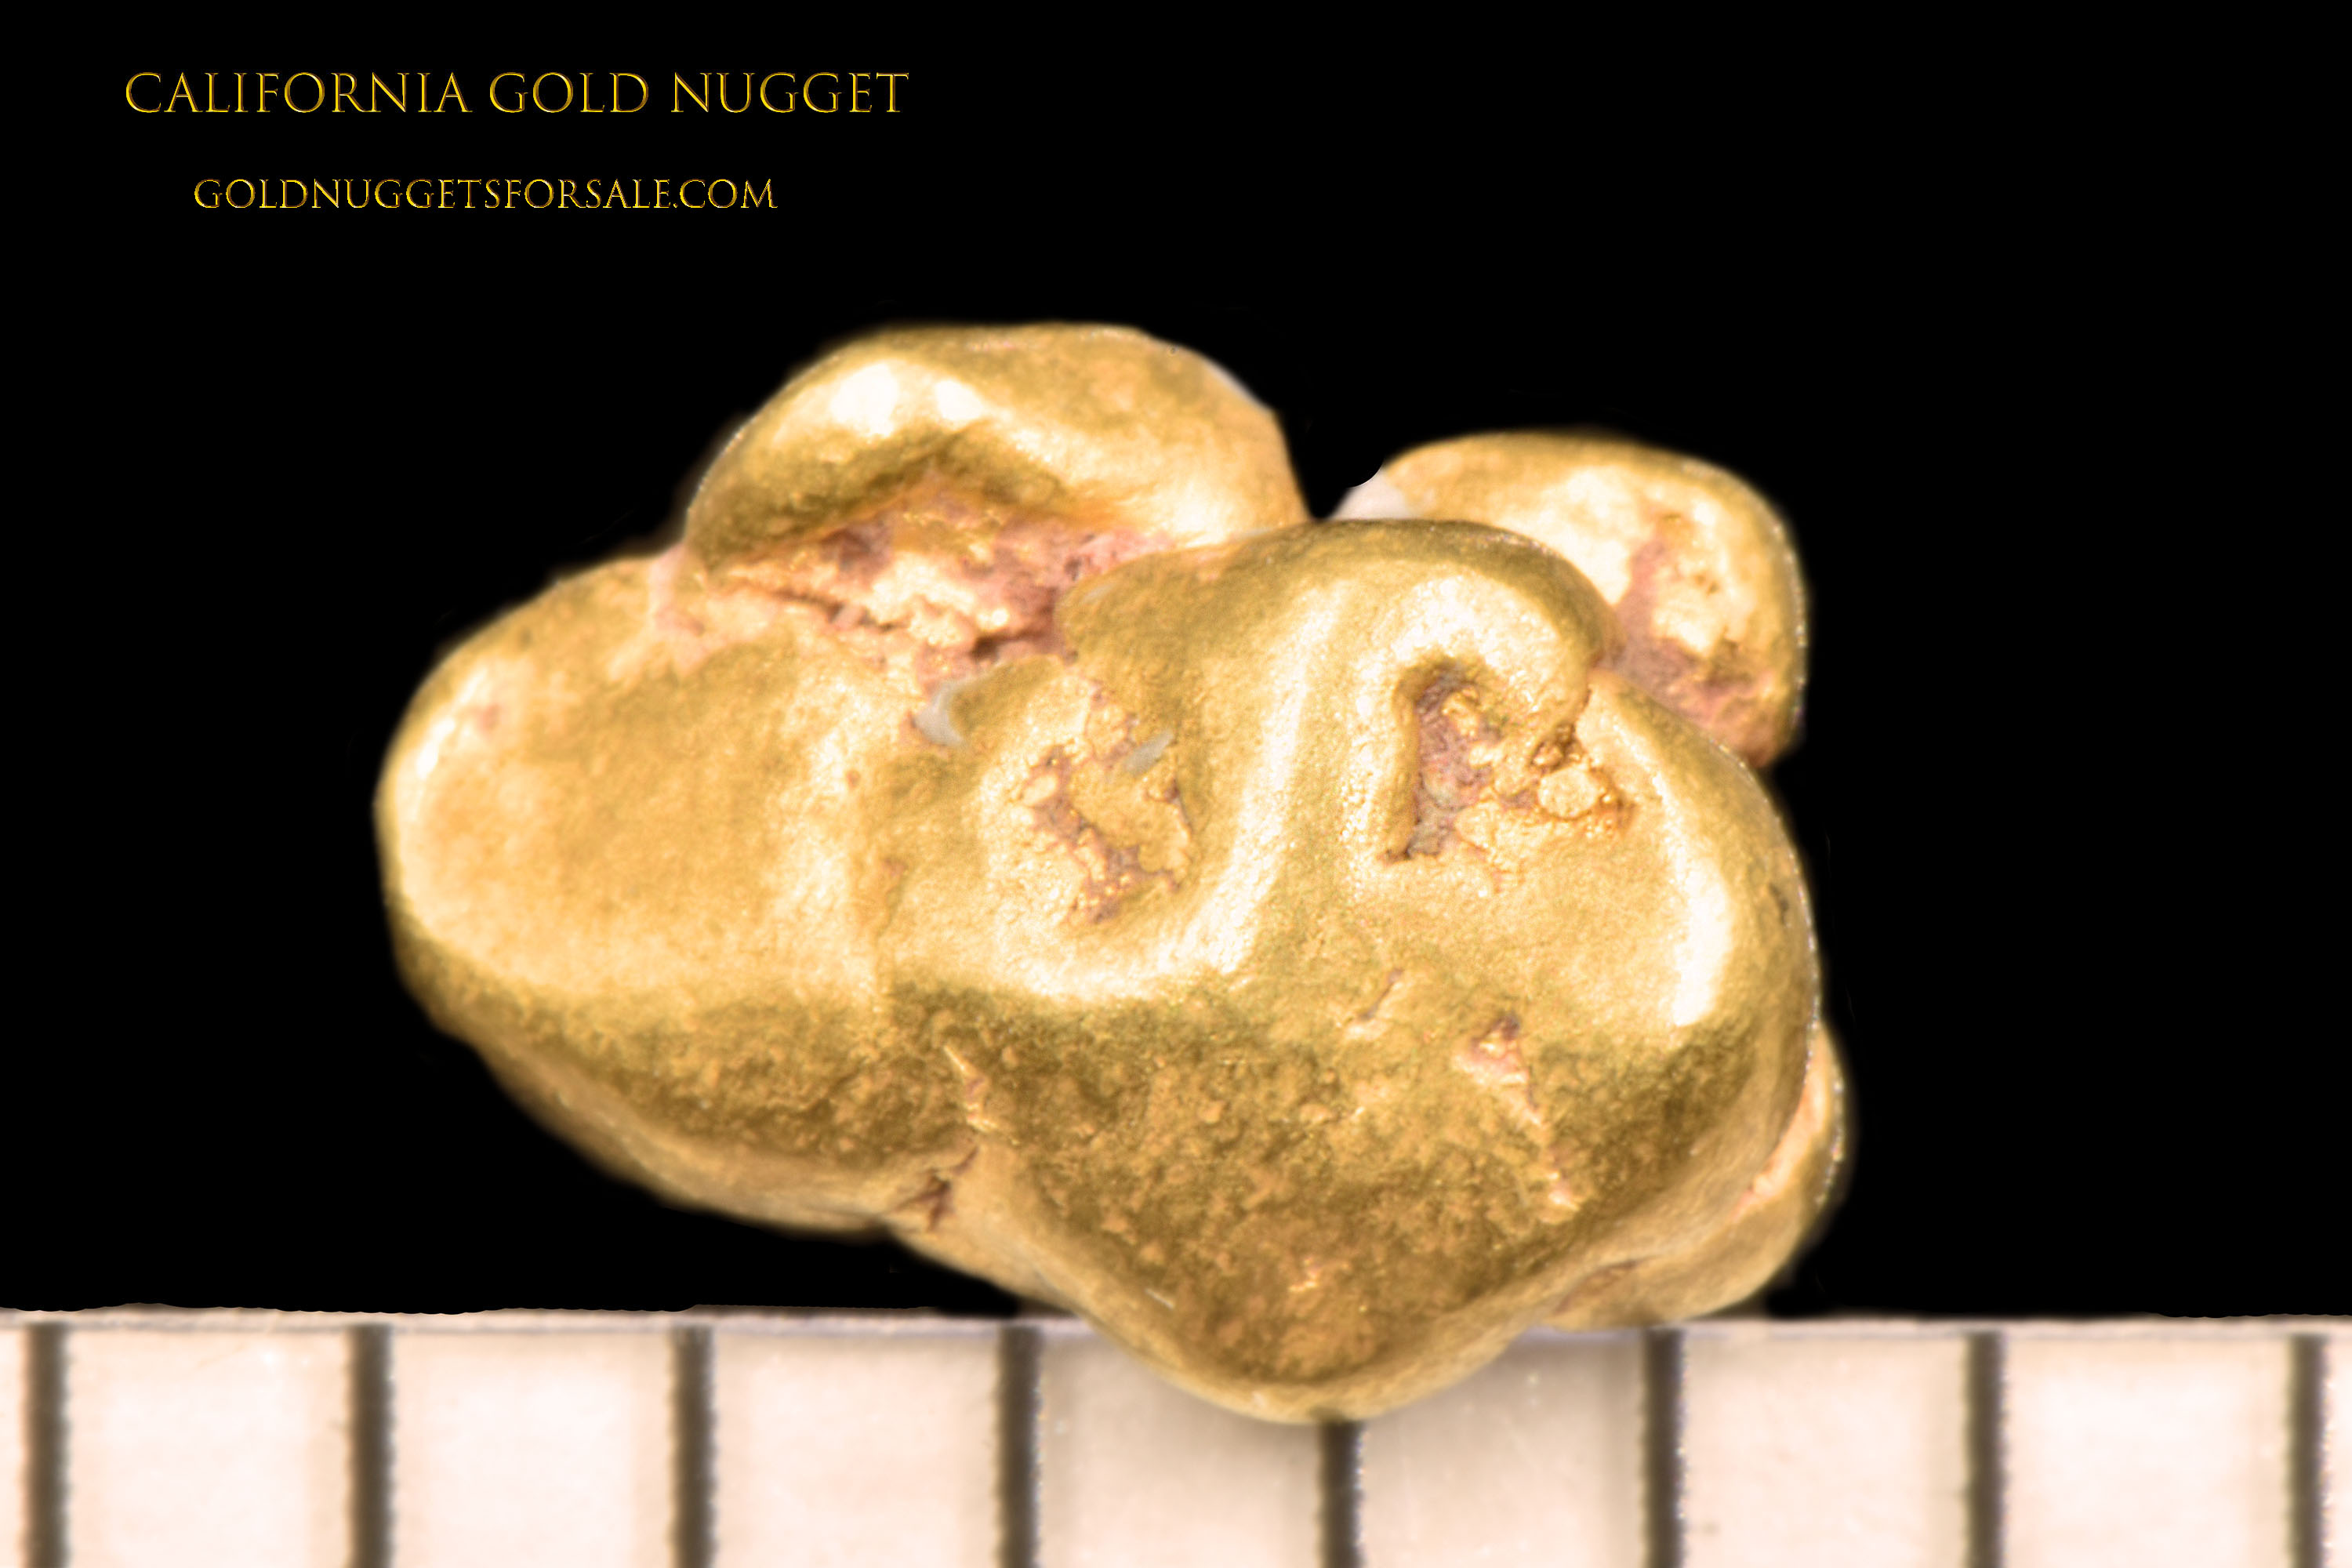 Rounded and Plump Jewelry Grade California Gold Nugget - Click Image to Close